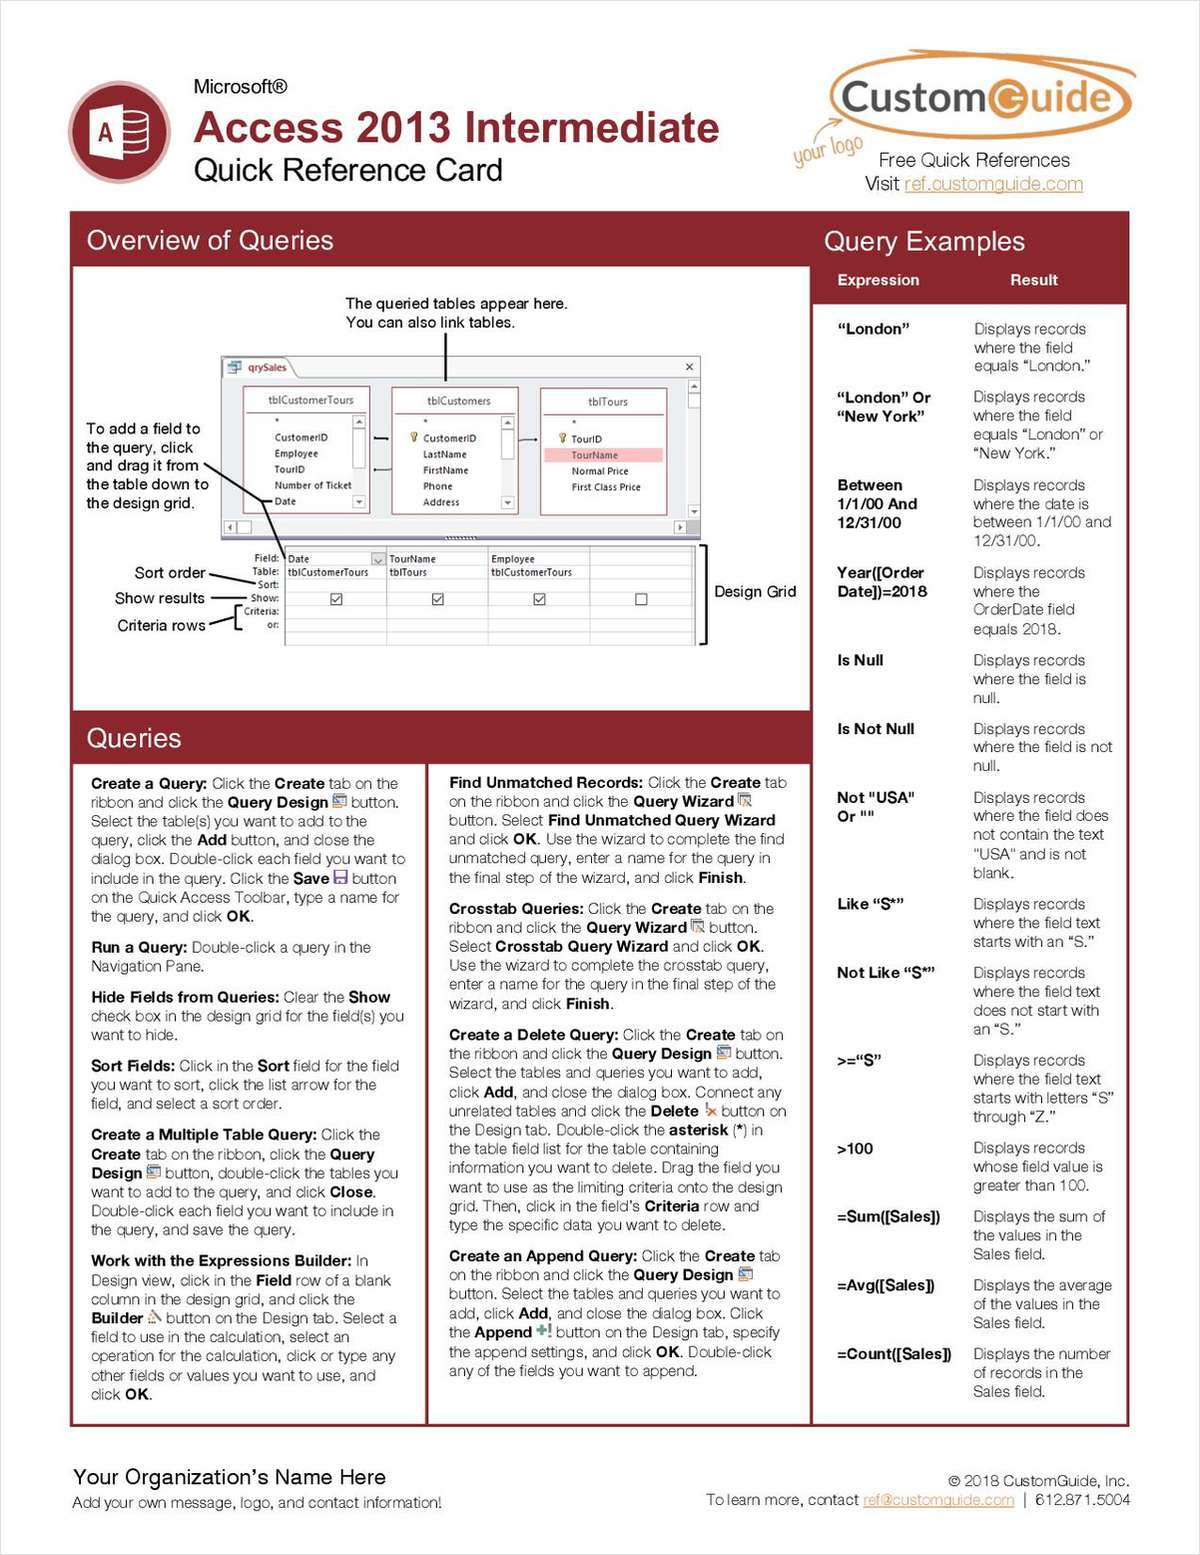 Microsoft Access 2013 Intermediate - Free Quick Reference Card